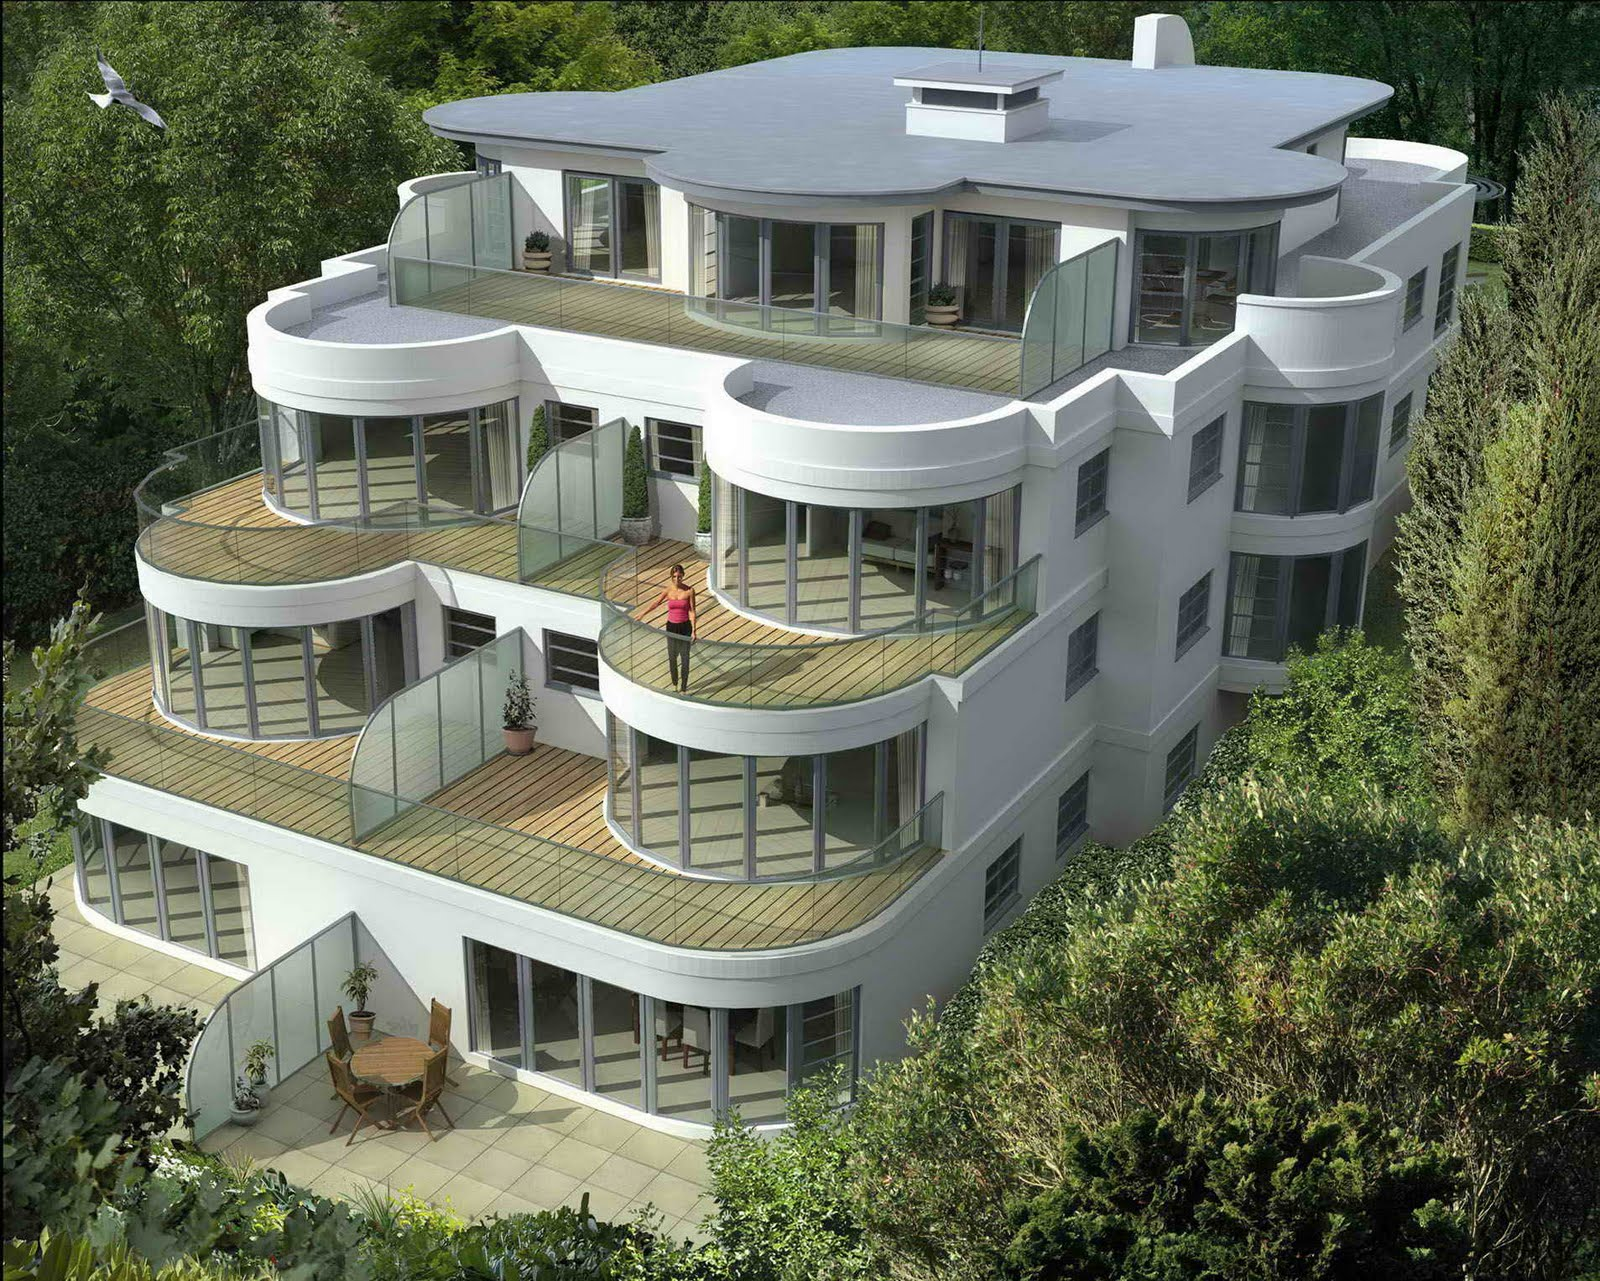 New home designs latest. modern homes designs.